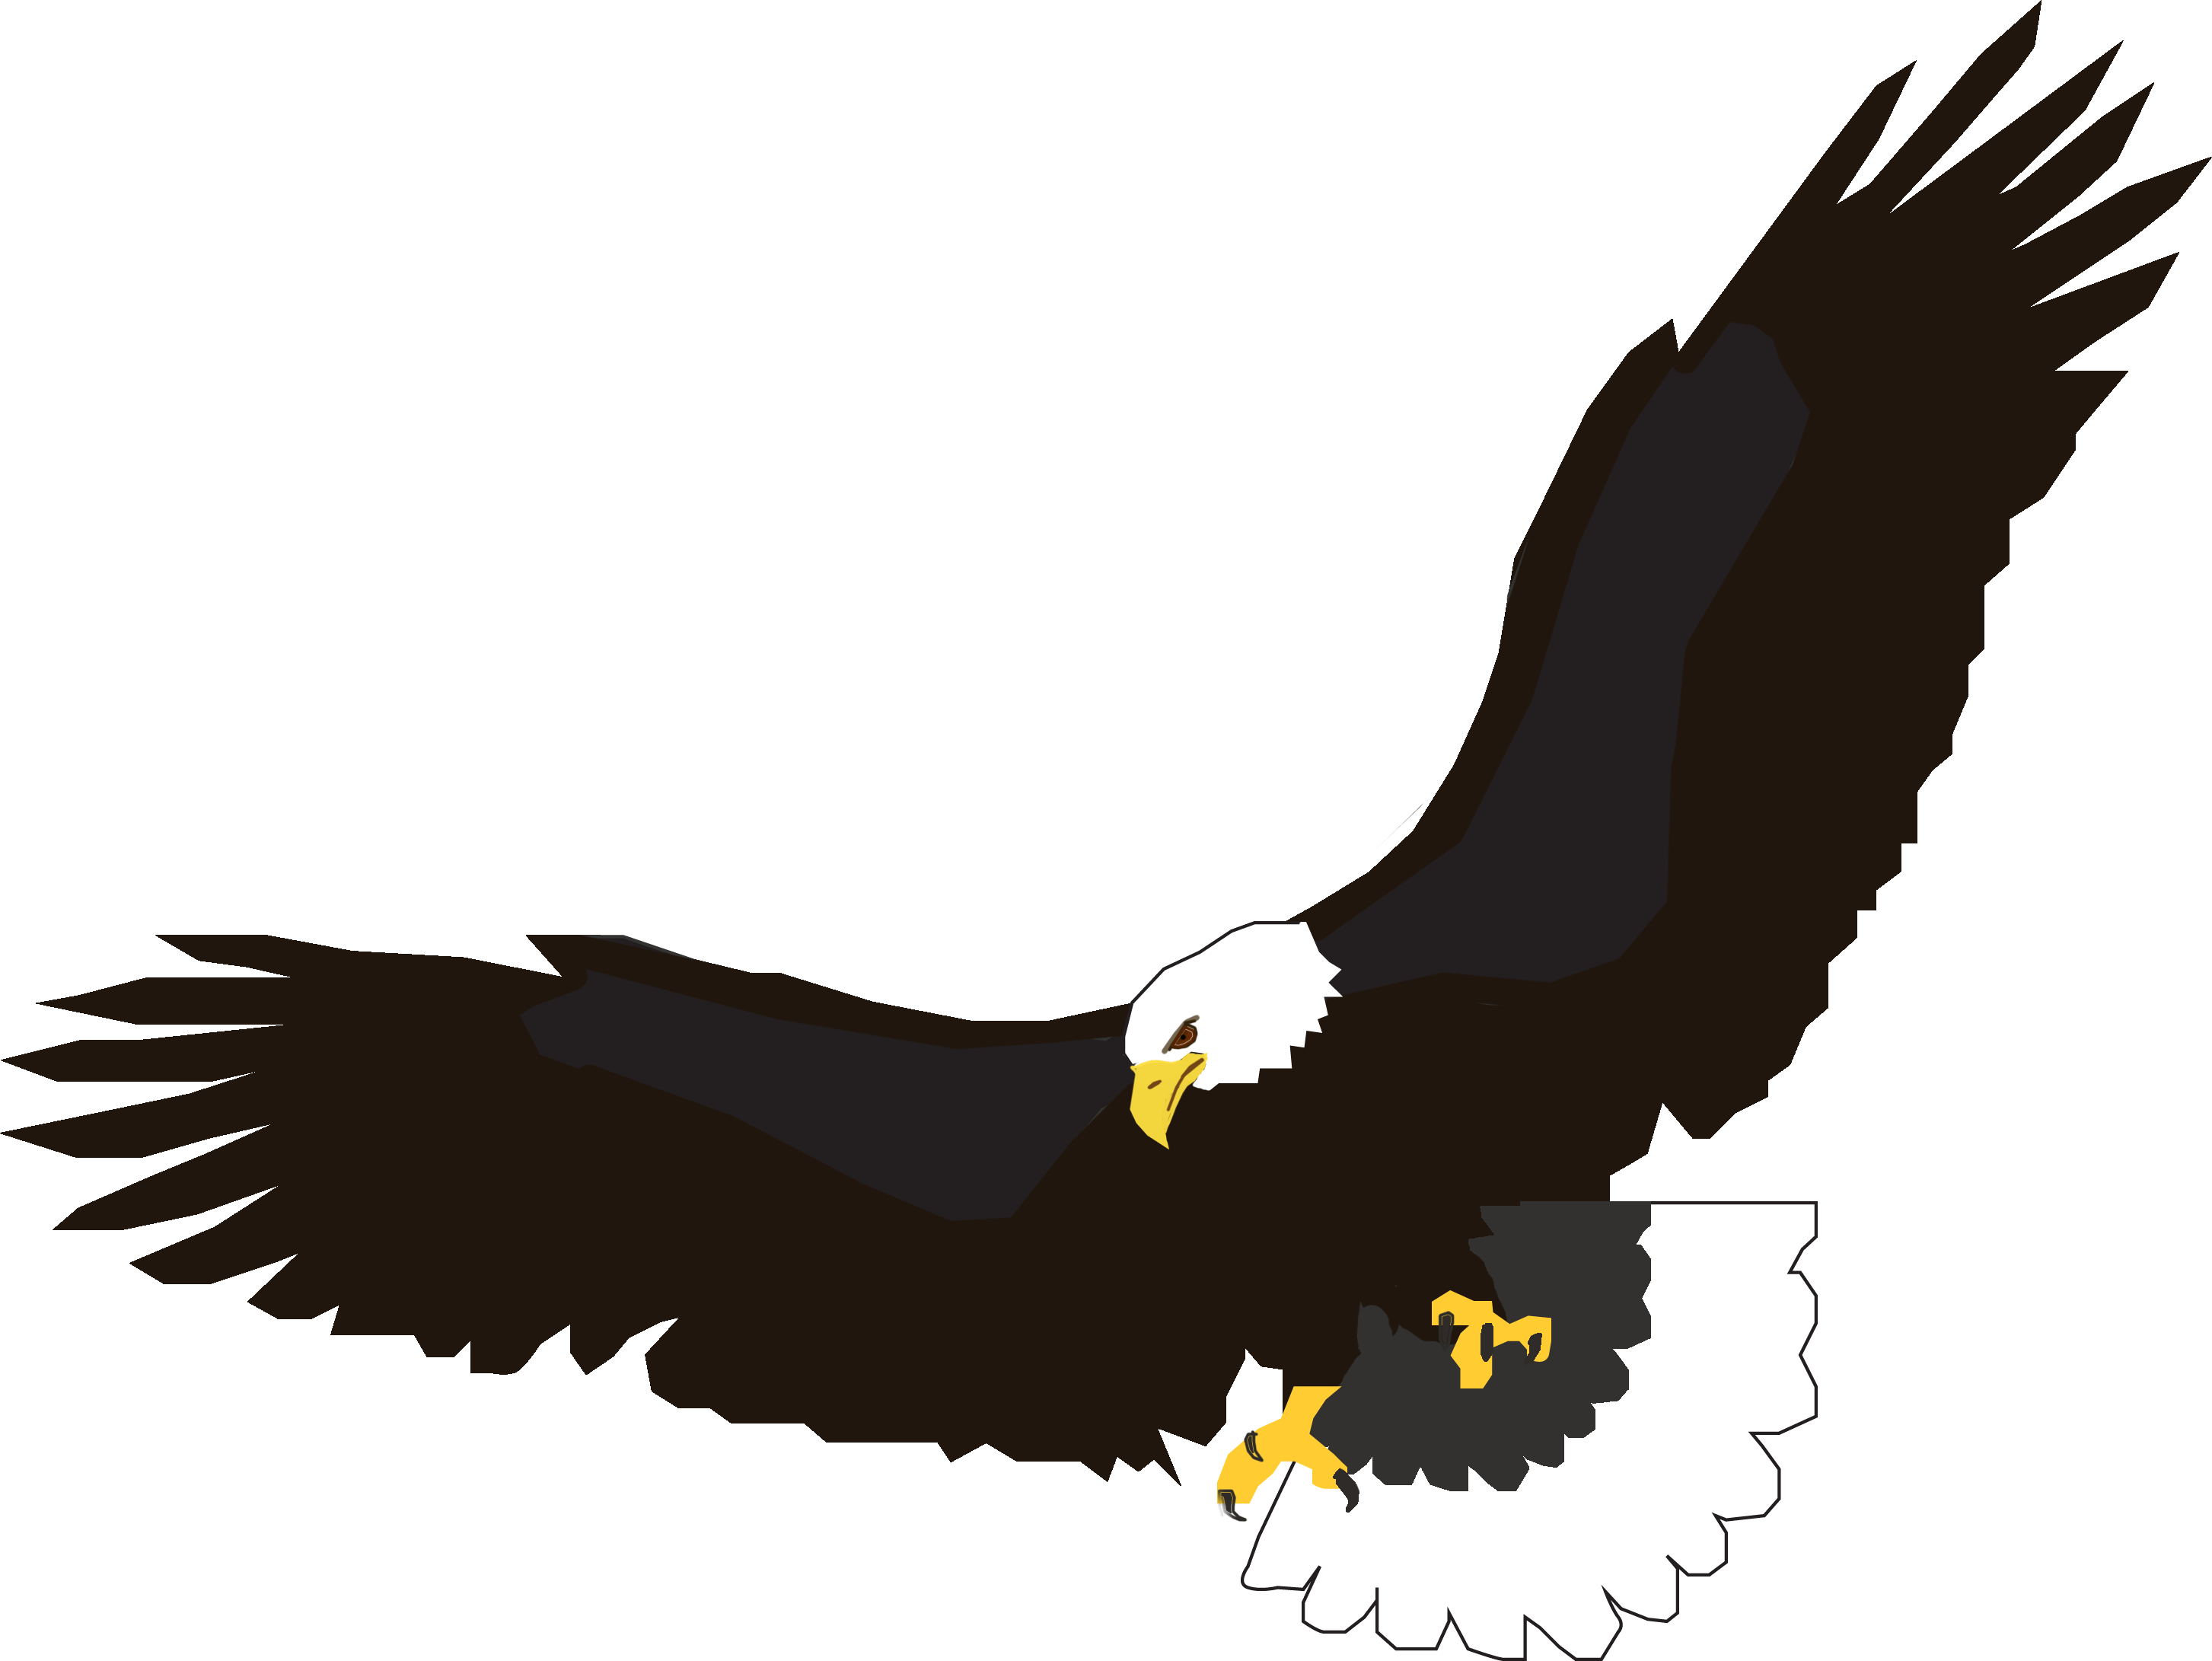 Eagle clipart wrestling, Eagle wrestling Transparent FREE.